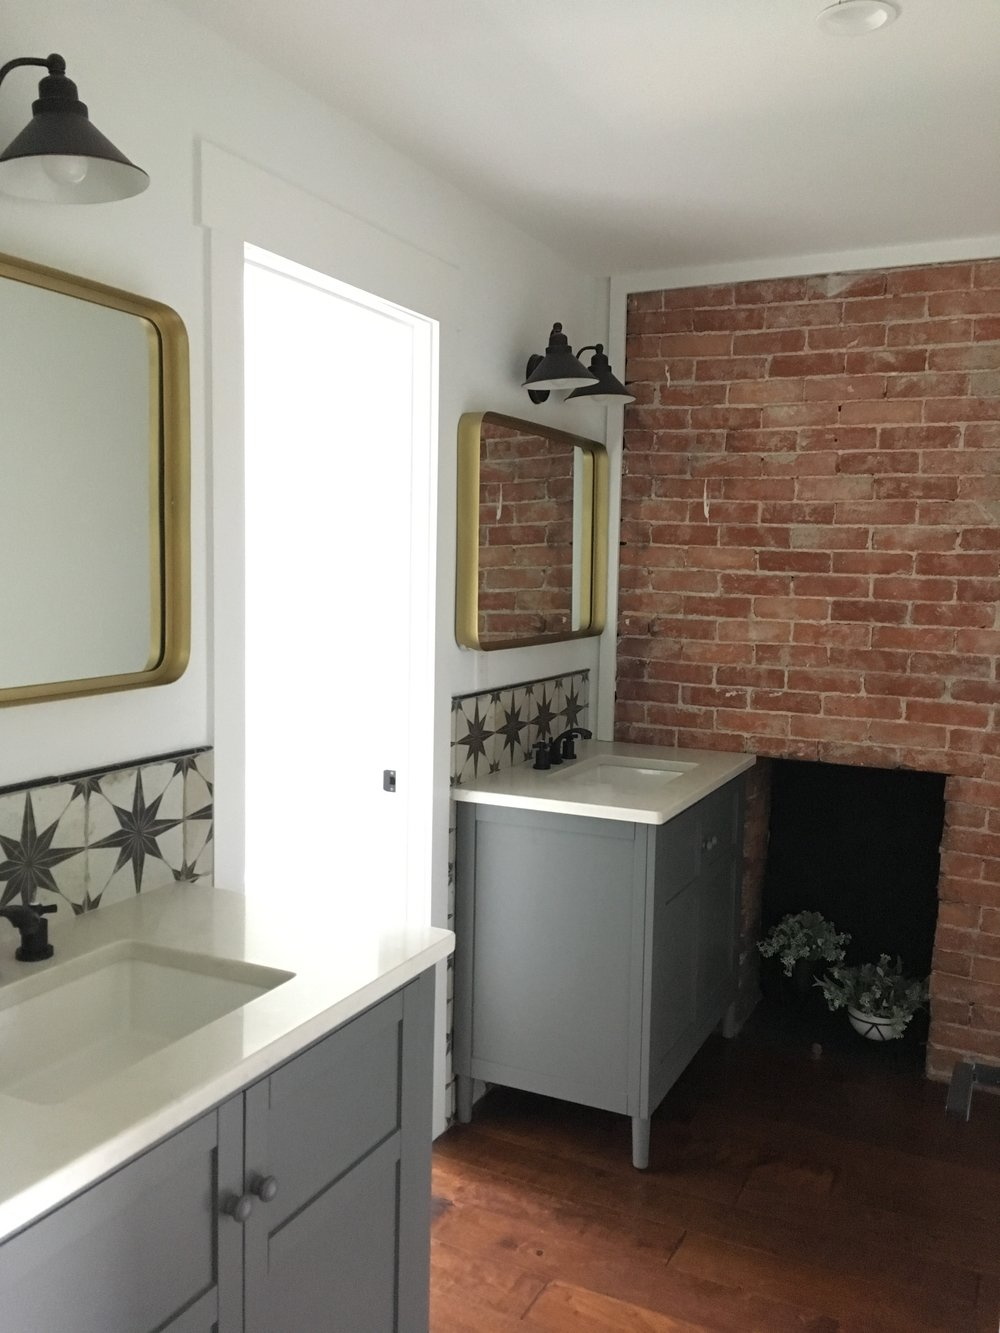 After: double vanities with a separate water closet and shower room increase privacy and allow everyone to get ready at the same time.